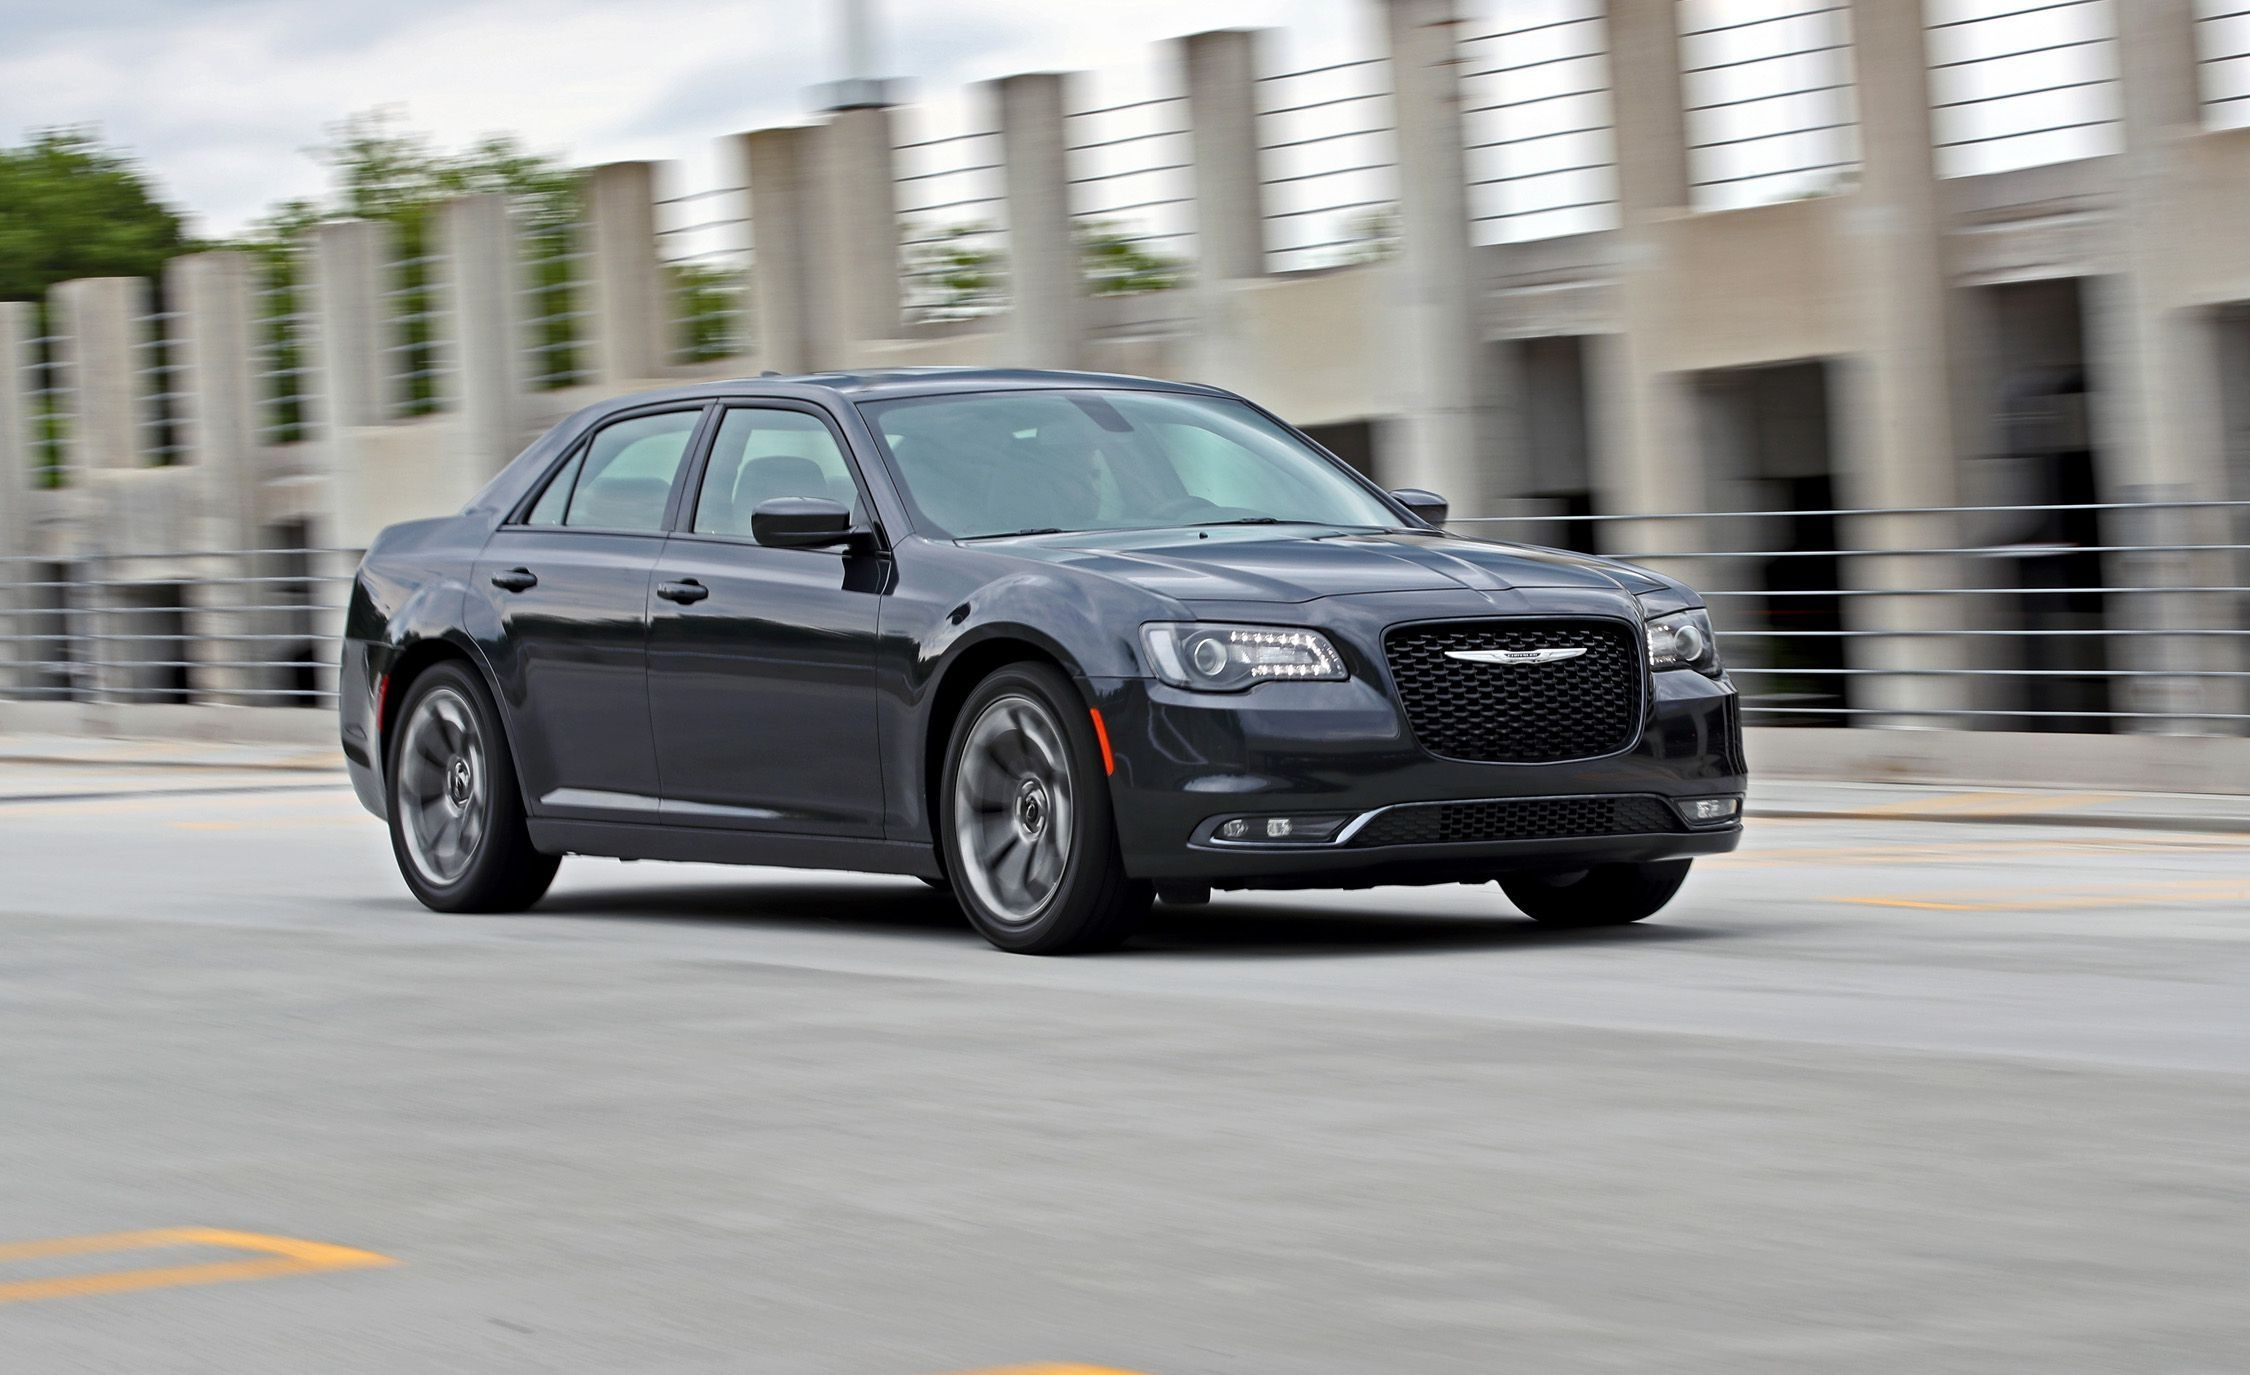 36 New 2020 Chrysler 100 Picture